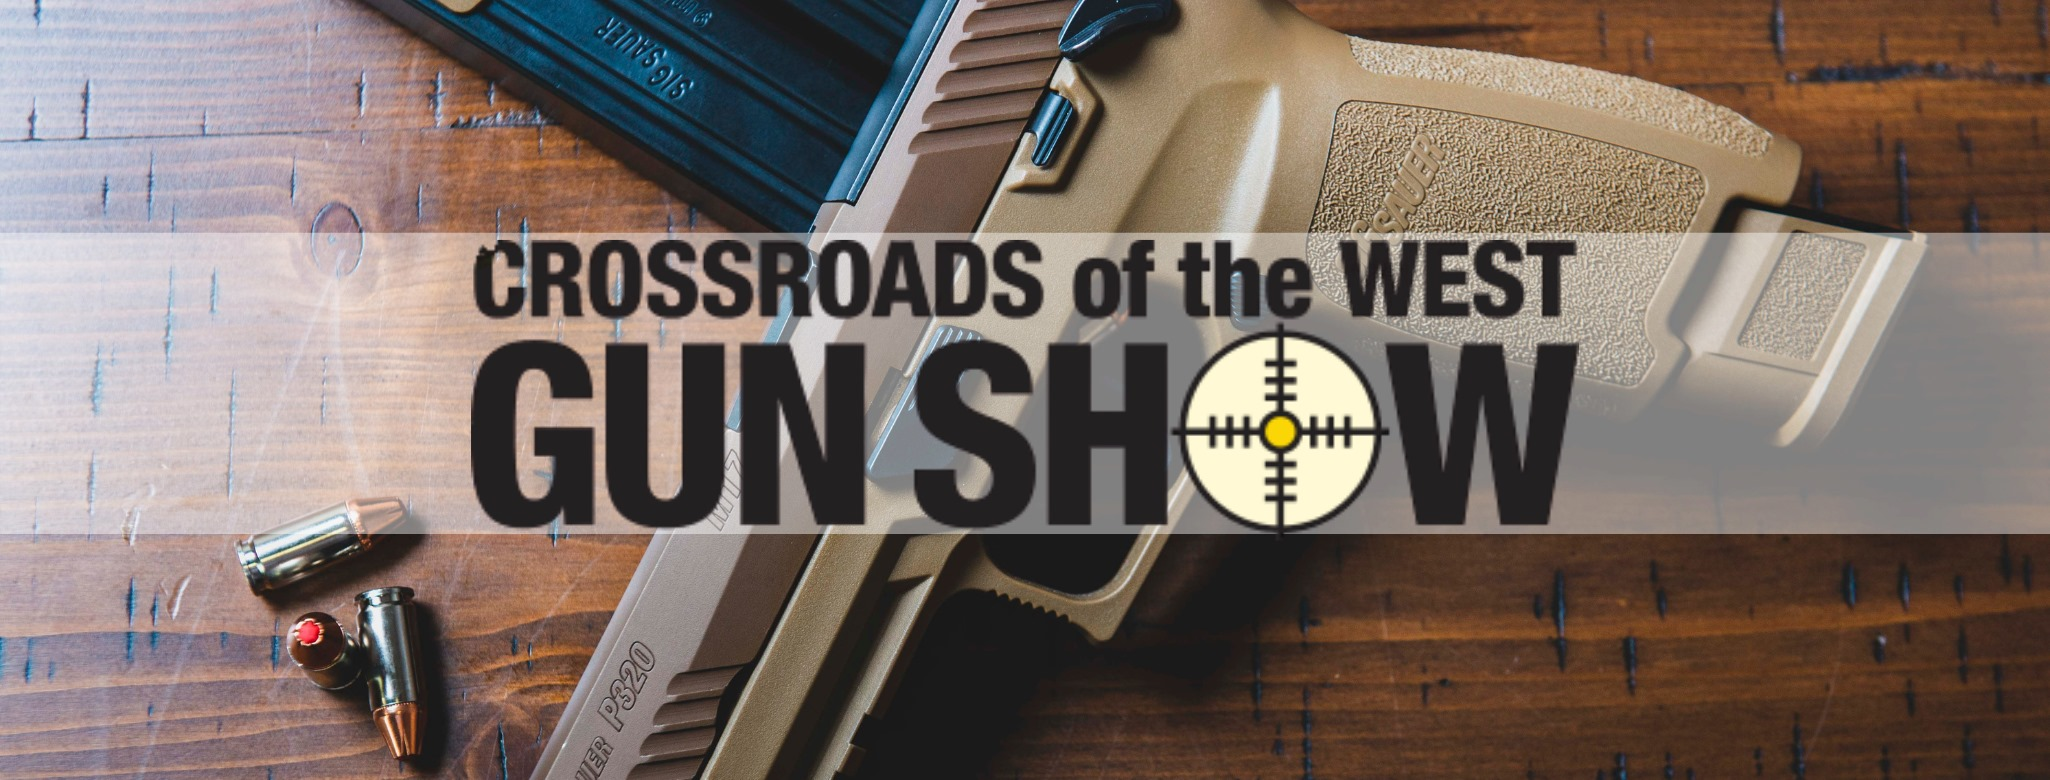 crossroads gunshow